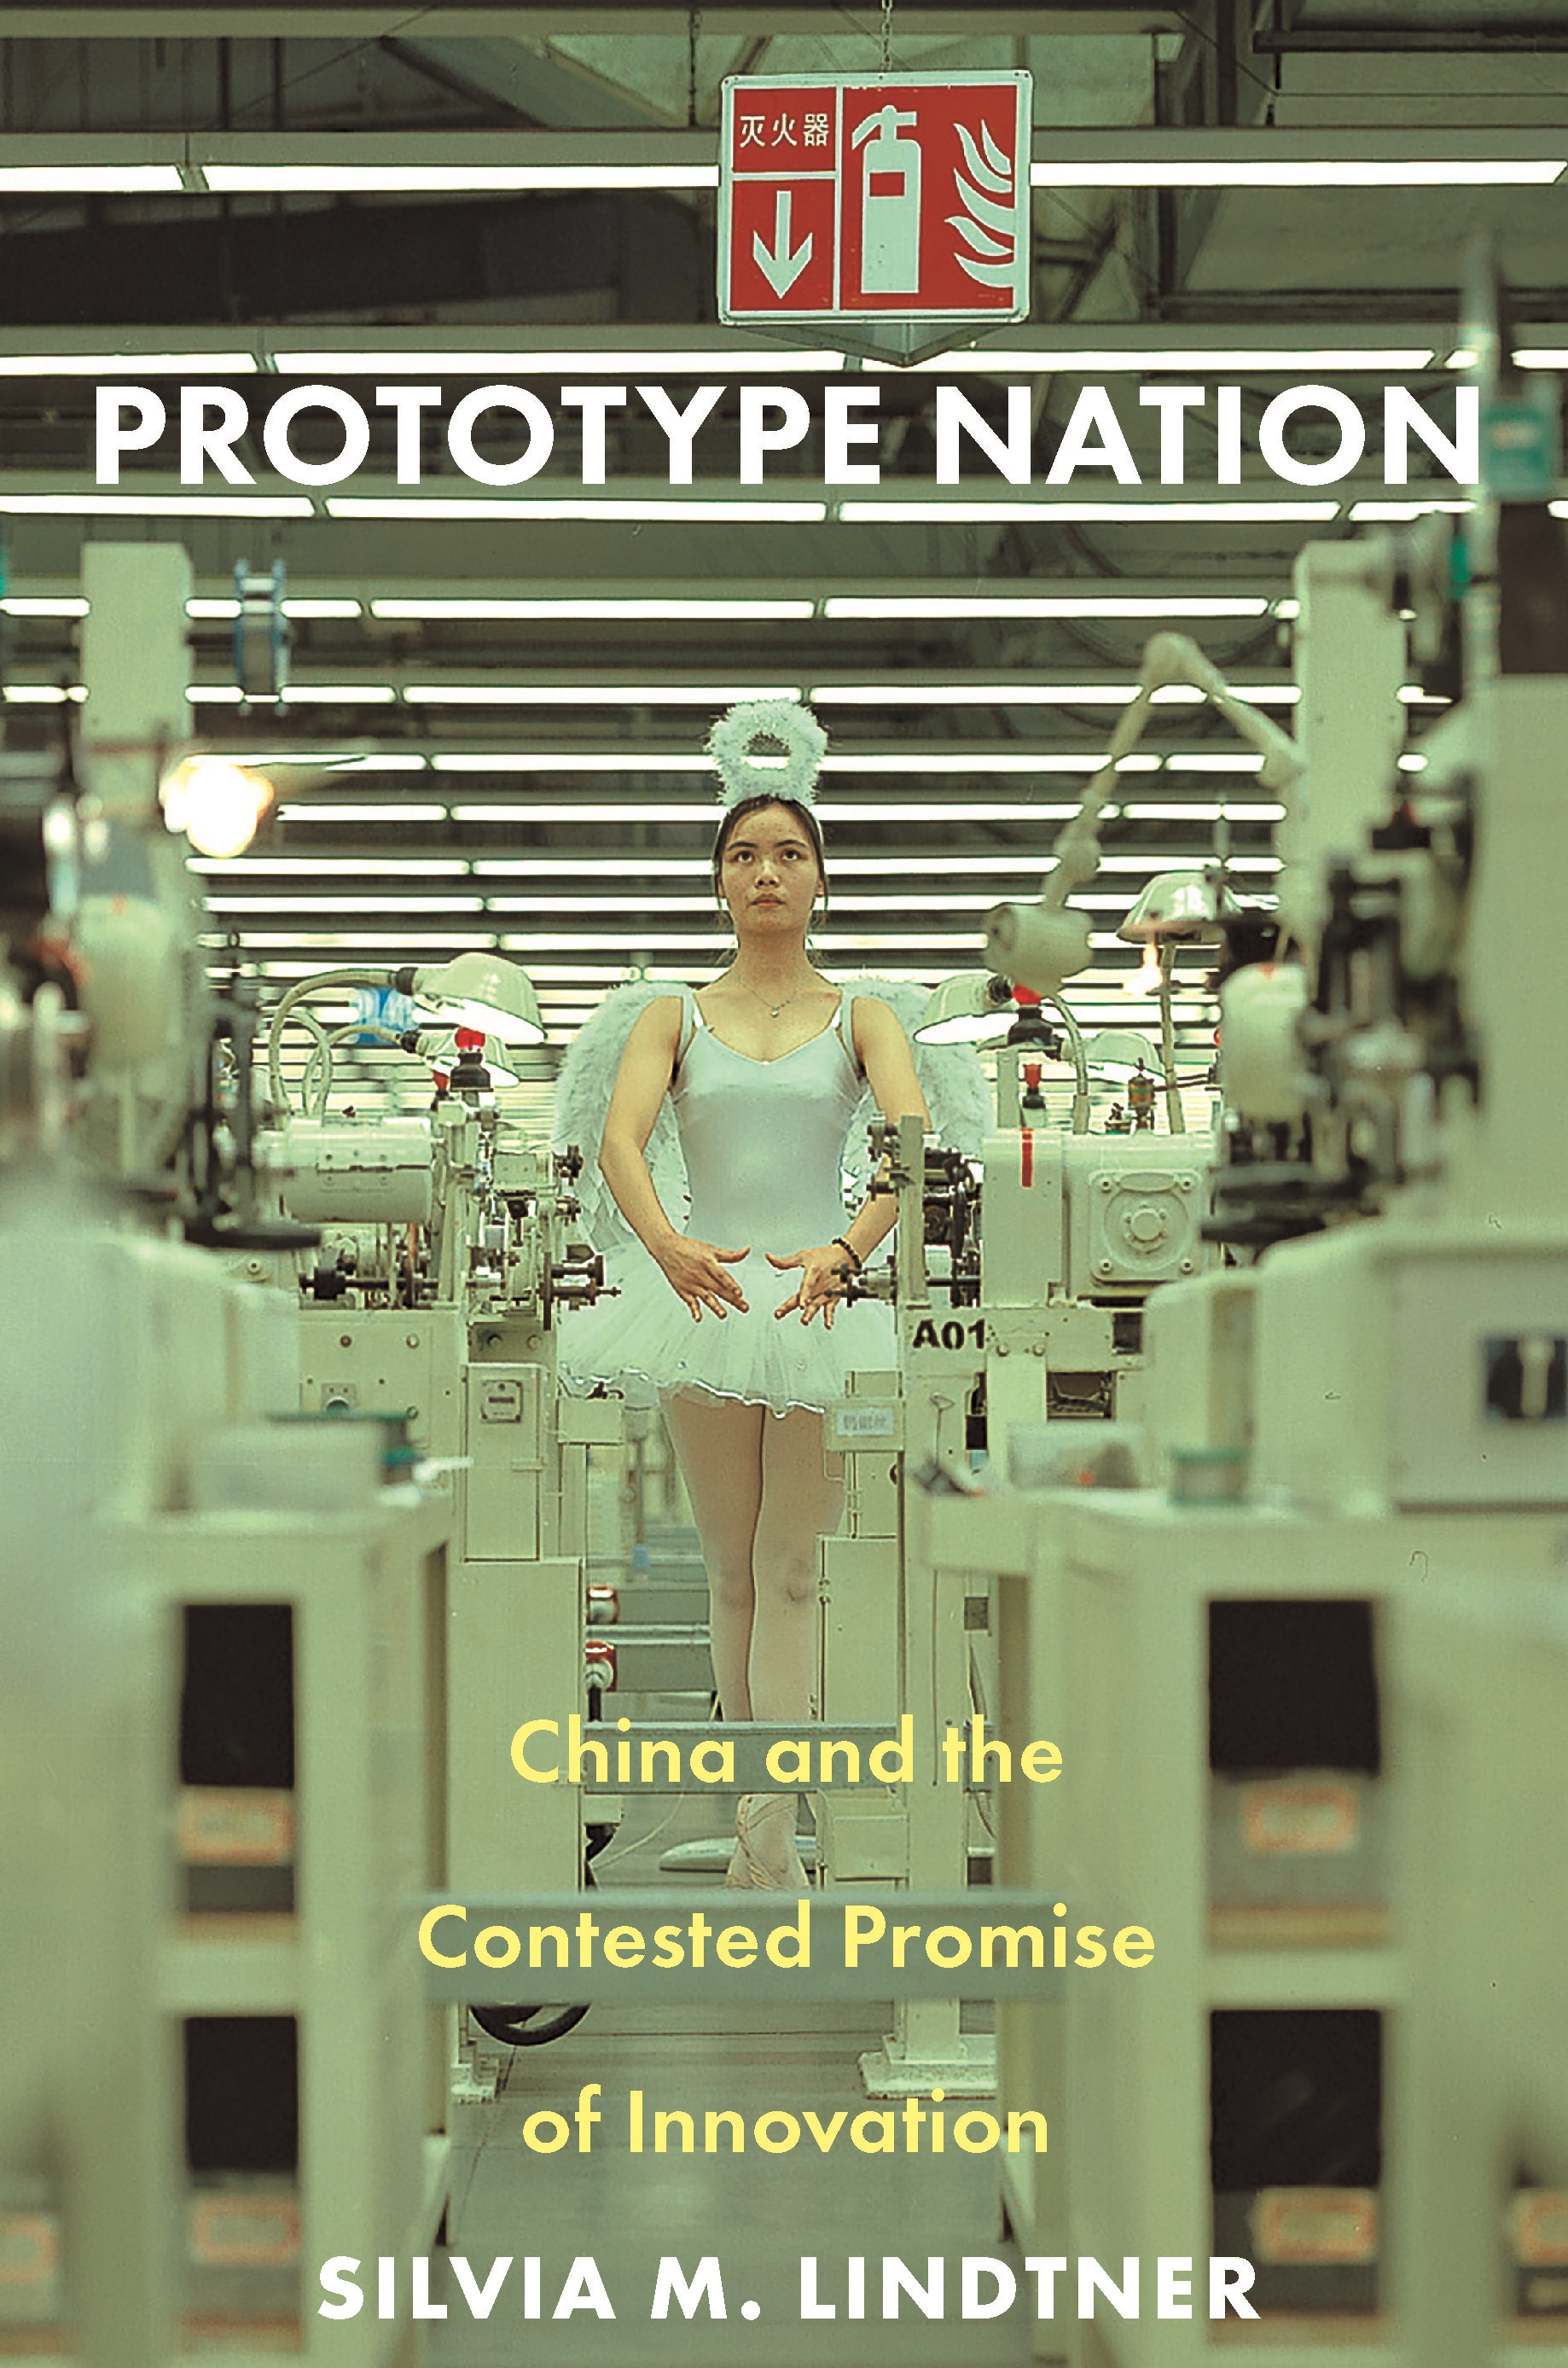 Prototype nation. 9780691207674